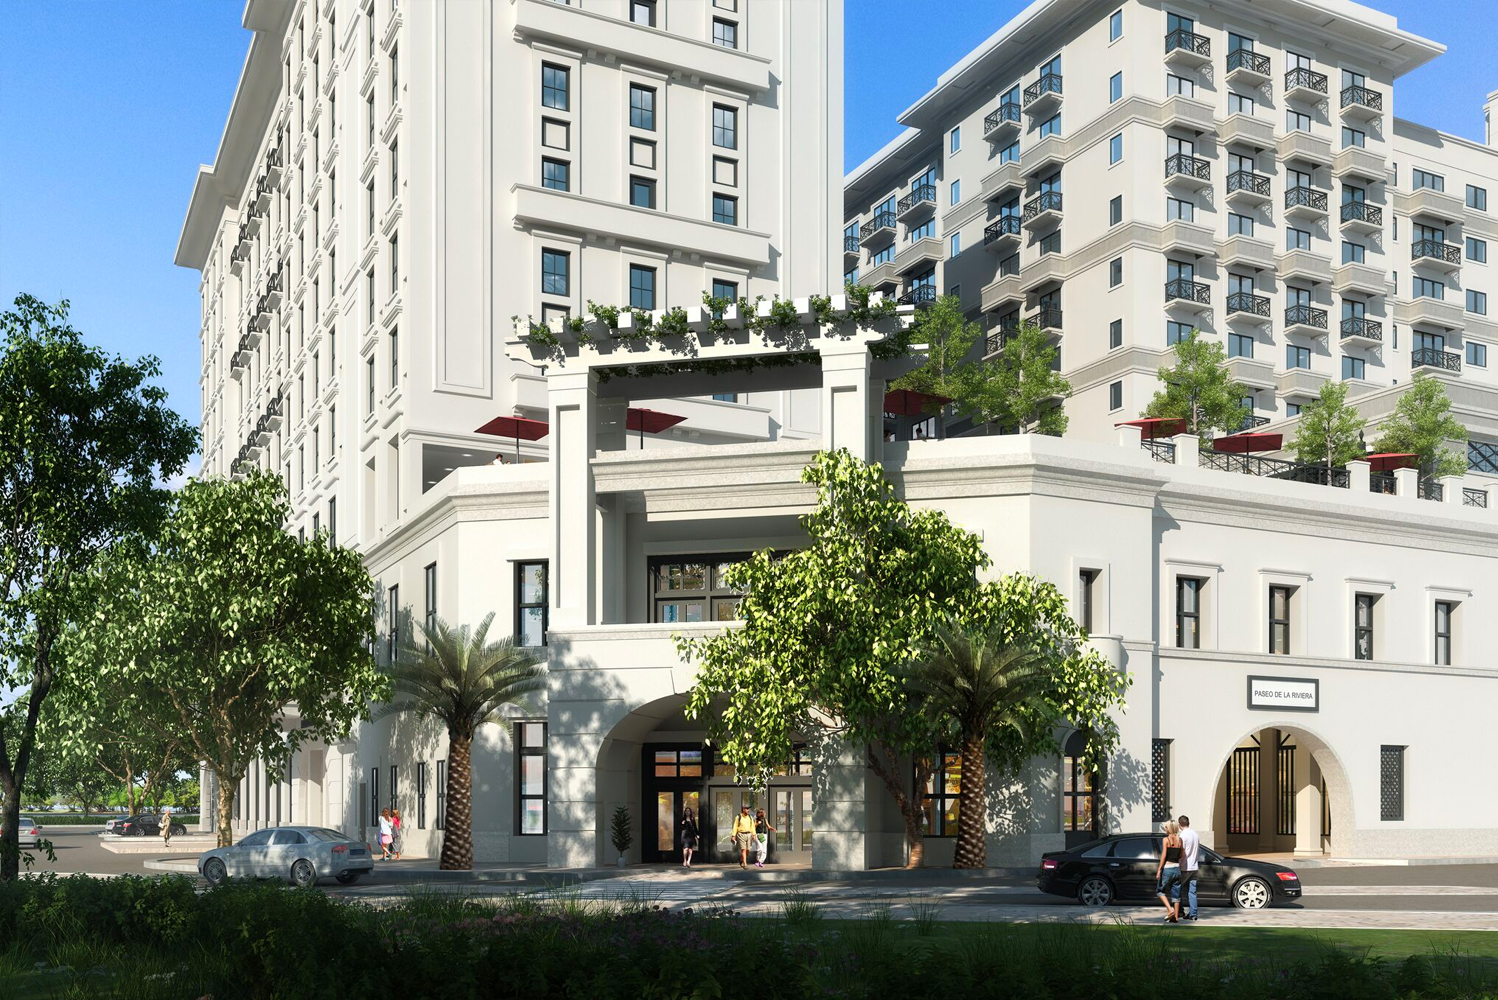 THēsis Hotel Miami, part of the Paseo de la Riviera mixed-use development, will have 245 guestrooms, two restaurants and co-working spaces.